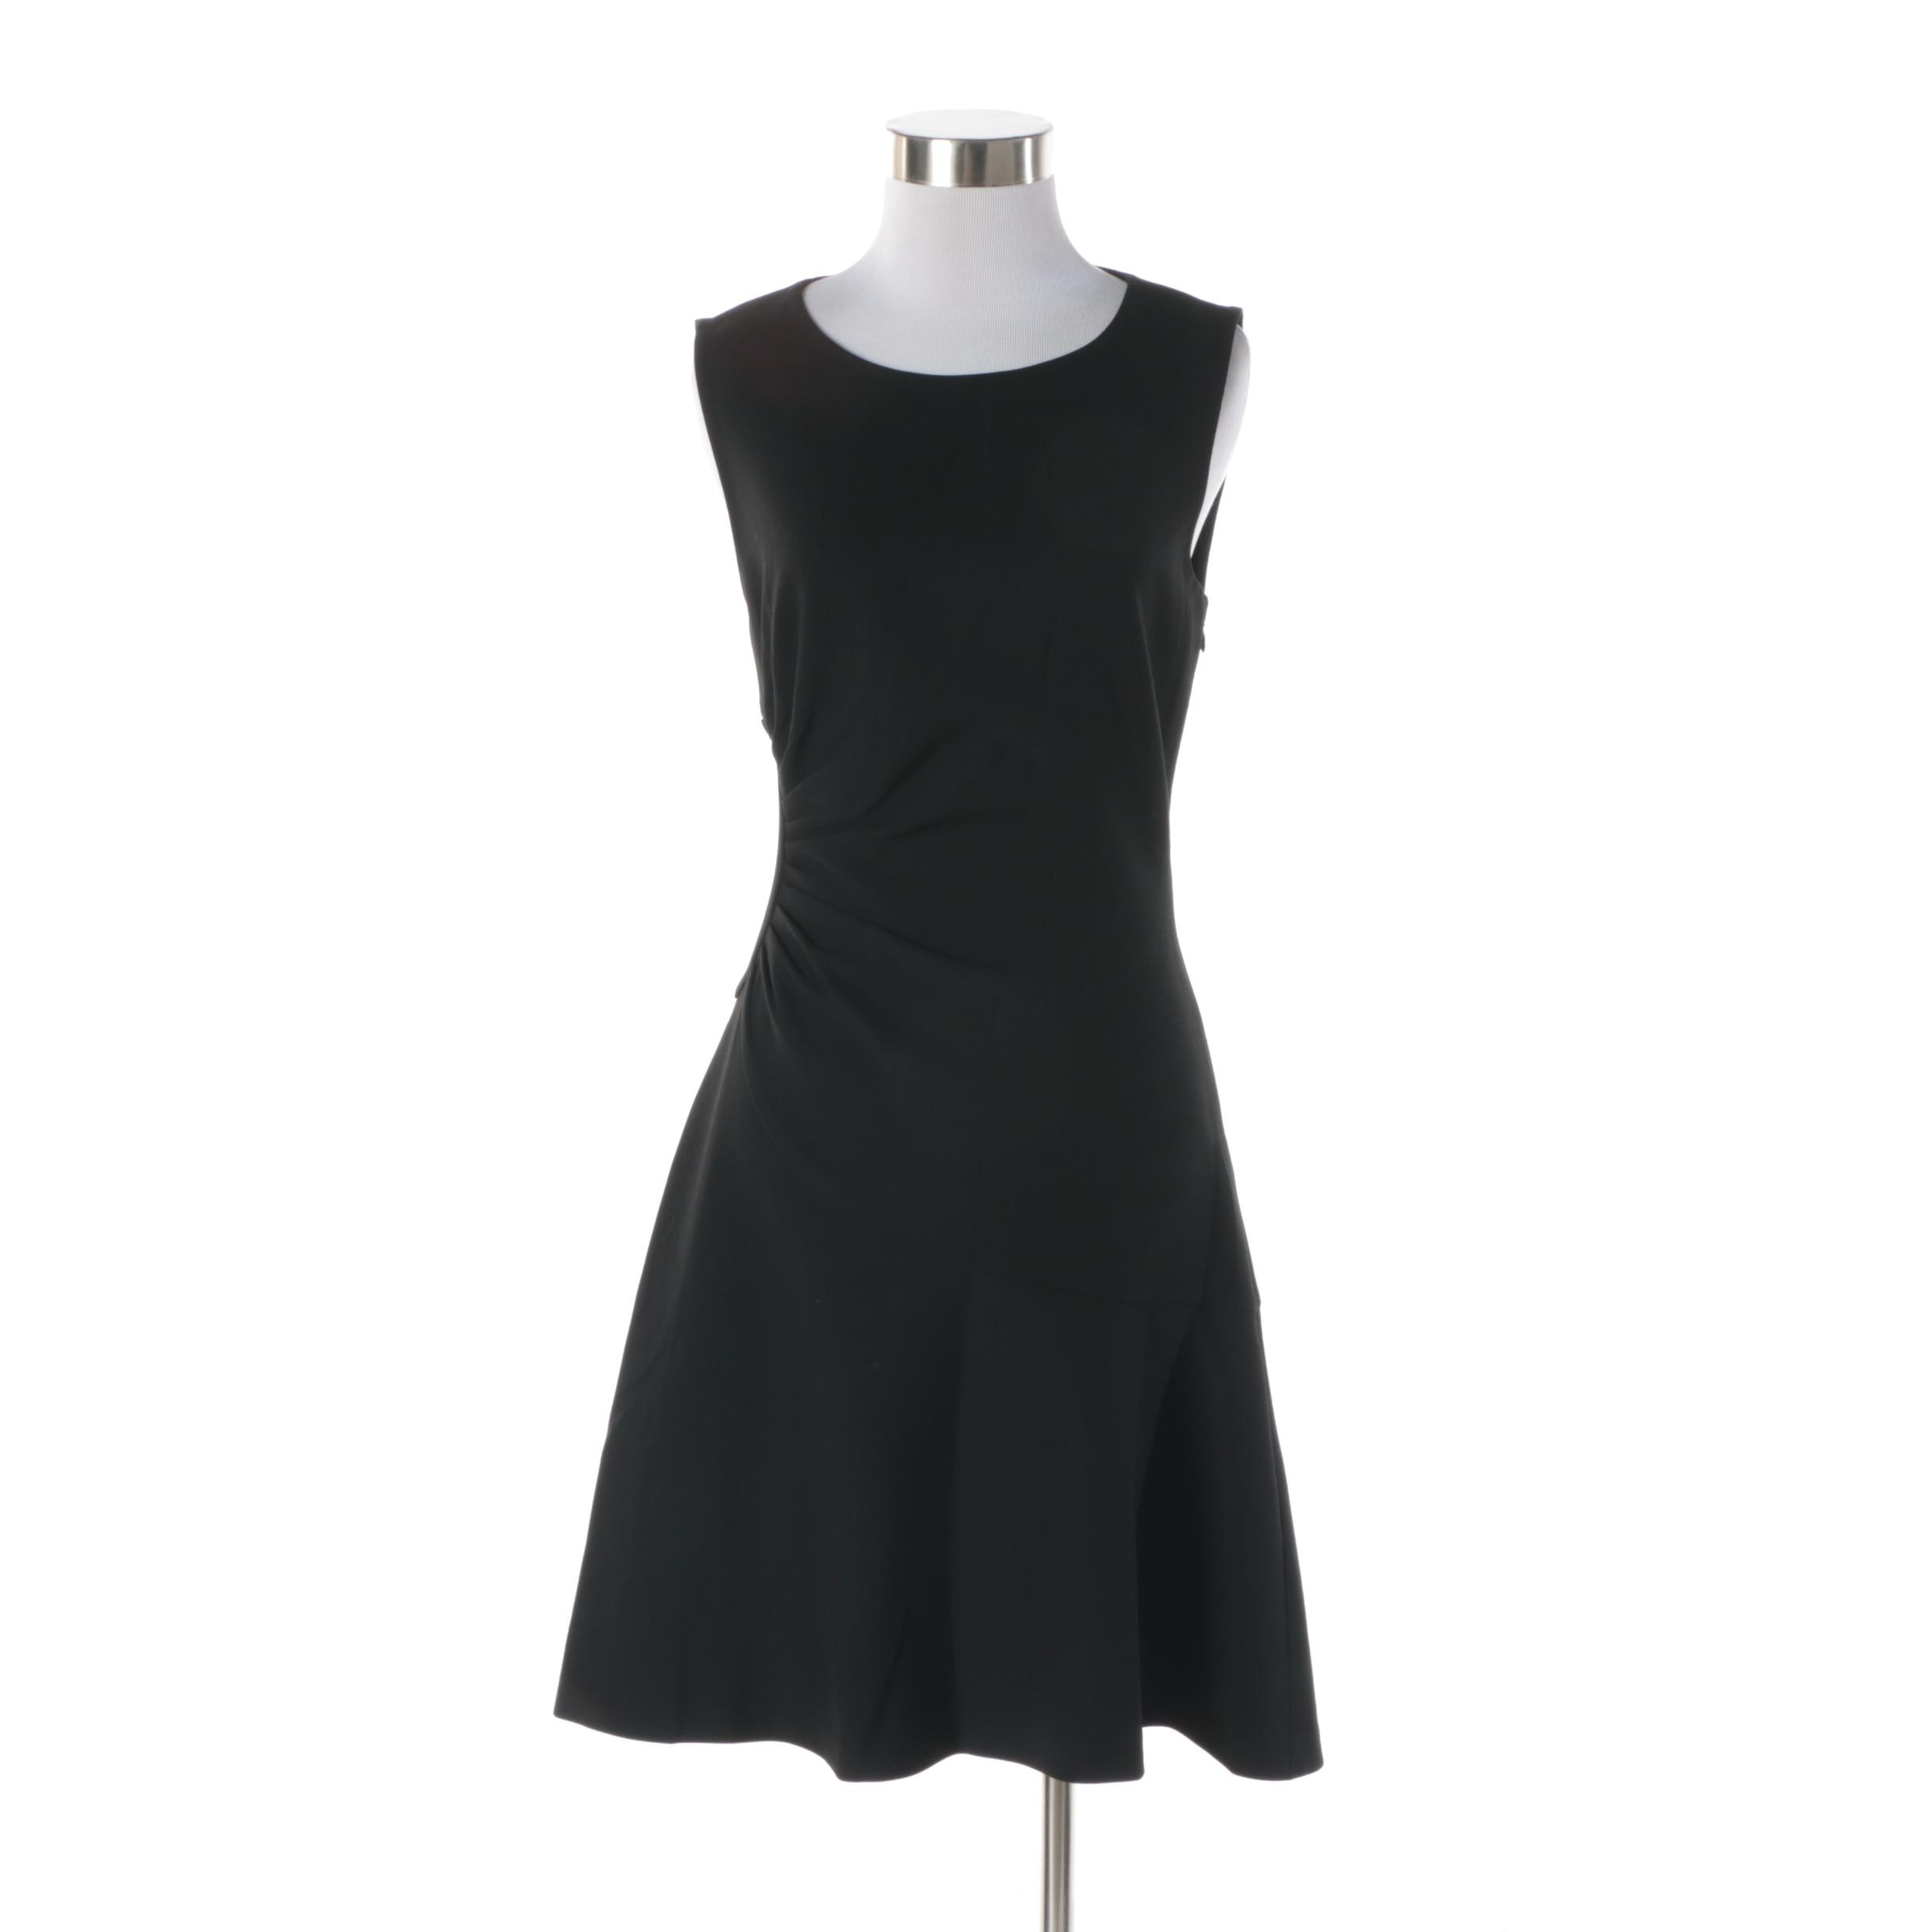 Diane von Furstenberg Black Sleeveless Cocktail Dress